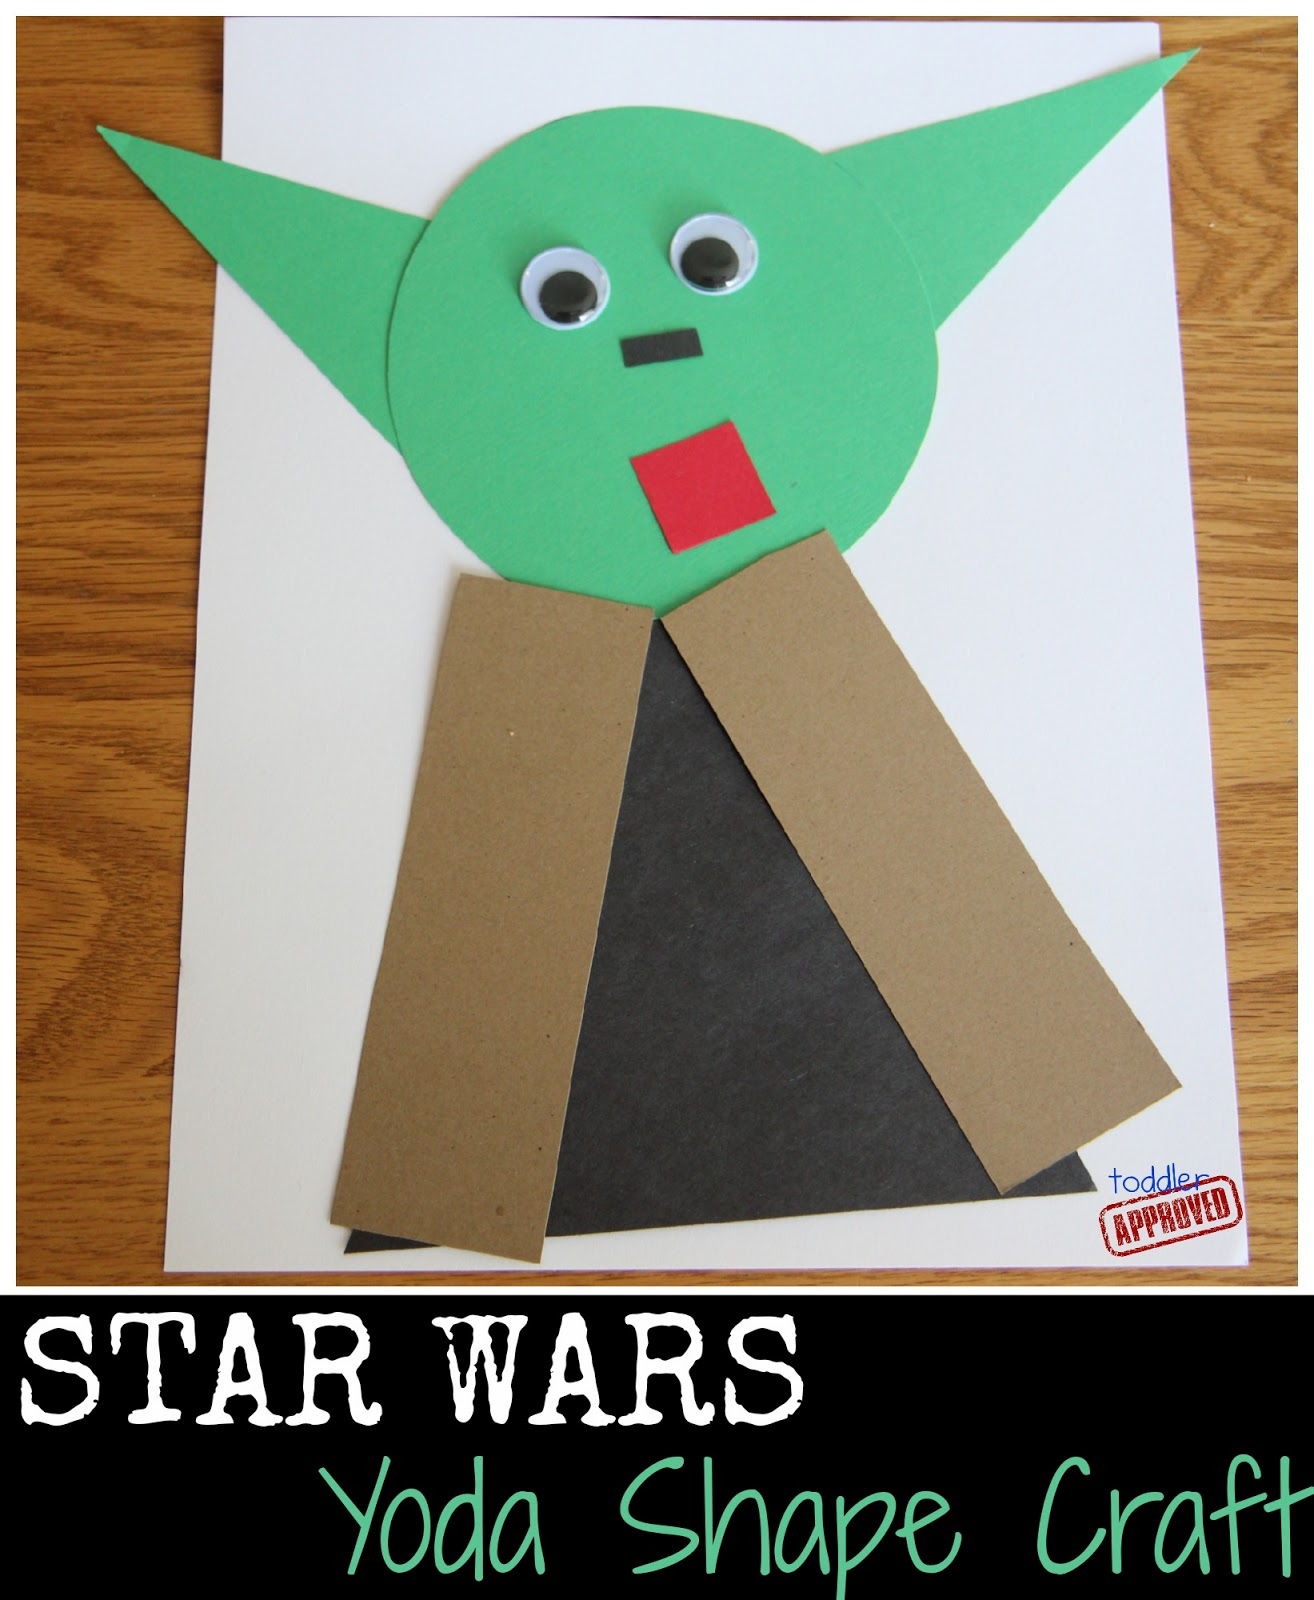 star wars arts and crafts toddler approved wars yoda shape craft 7193